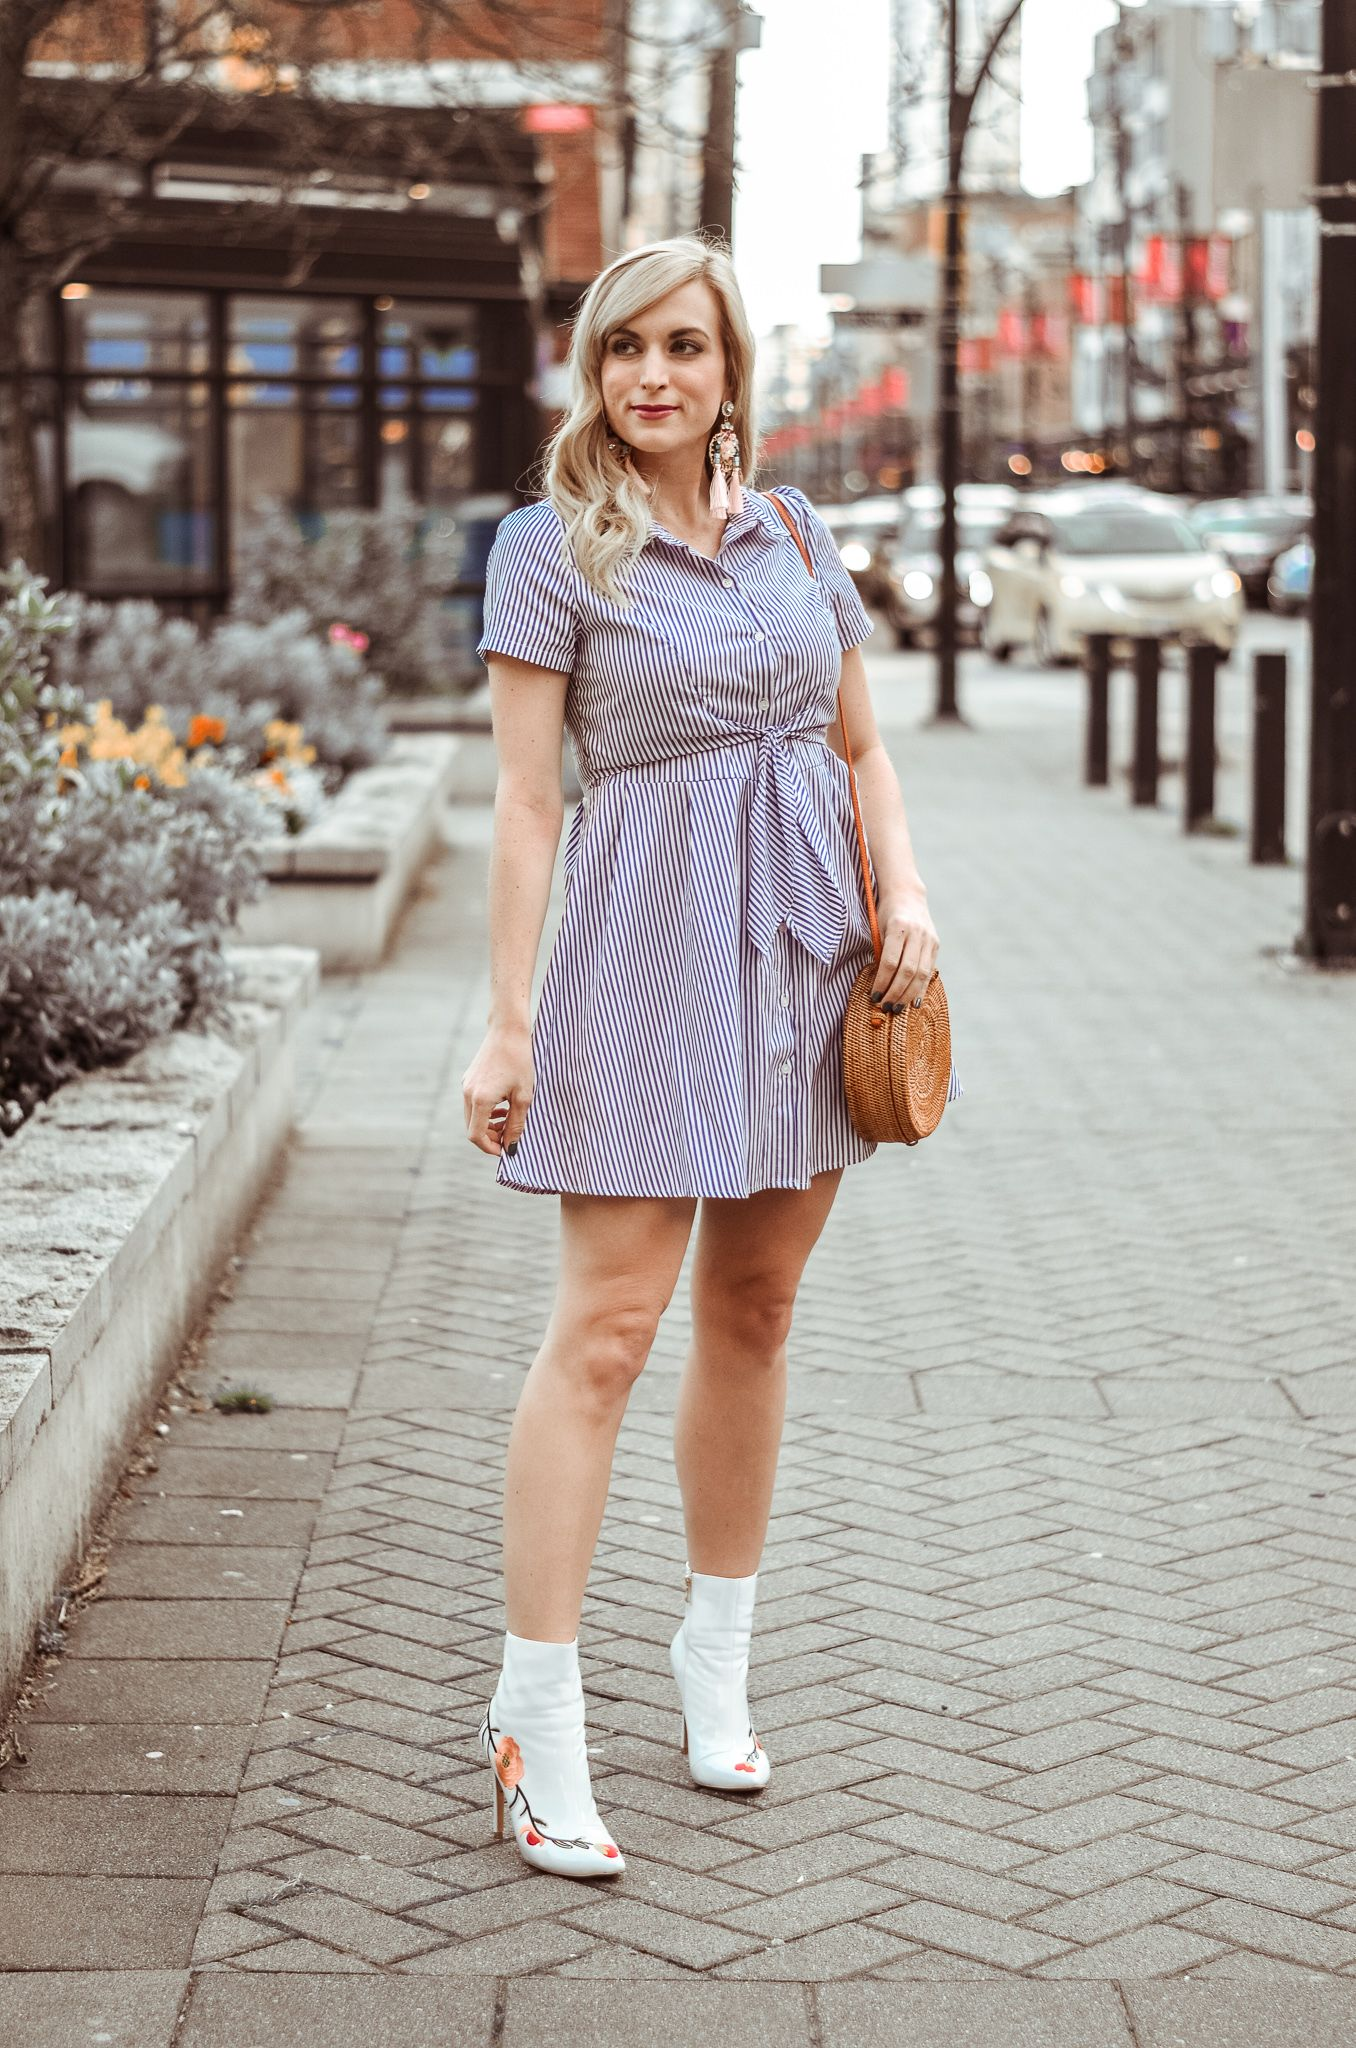 This Pinstripe Shirt Dress Is Right On Trend For Spring Summer And Is Super Affordable Nothing In This Spring Summer Dress Outfits Summer Outfits Fashion [ 2048 x 1356 Pixel ]